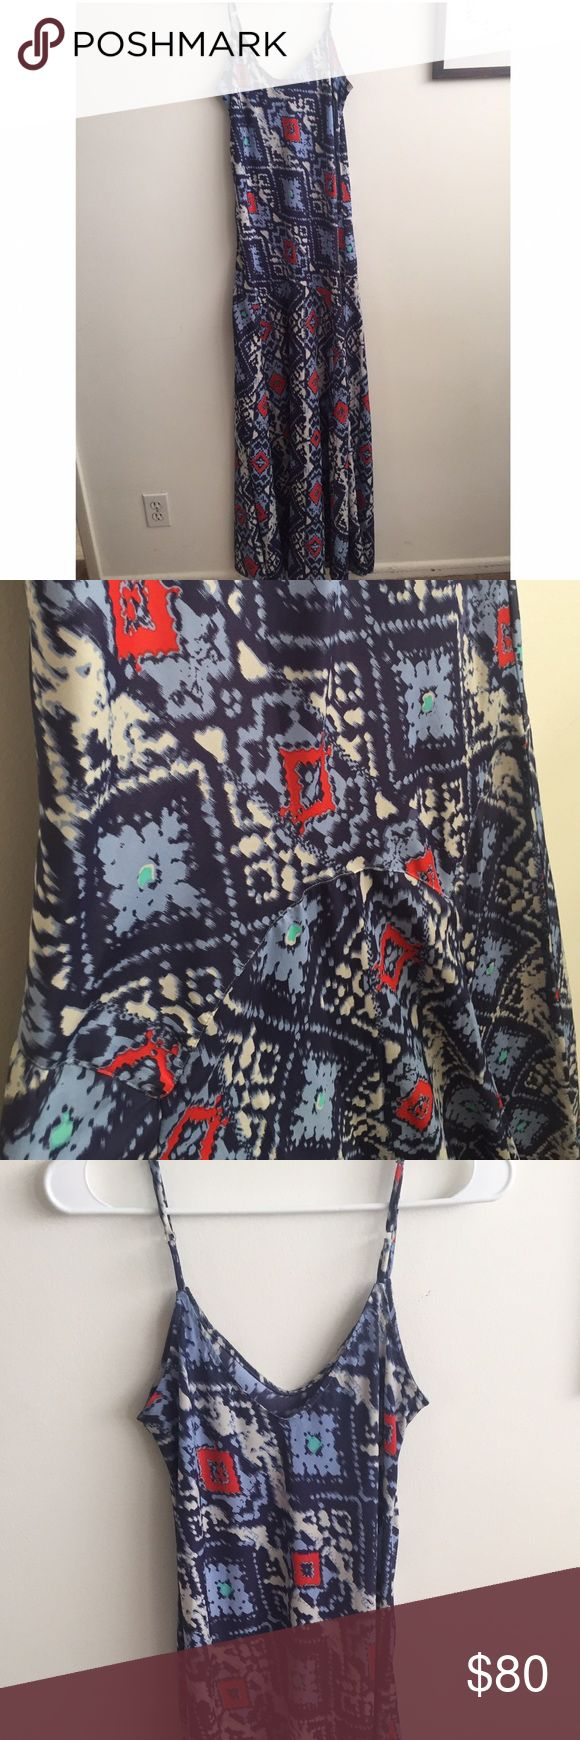 Flynn Skye long dress - semi formal Long rayon dress with an amazing print and super flattering. It has a gem that falls along upper thighs that magically slims the waist and accentuates the behind. Wore it to a wedding and baby shower - great as formal or informal wear! Flynn Skye Dresses Maxi